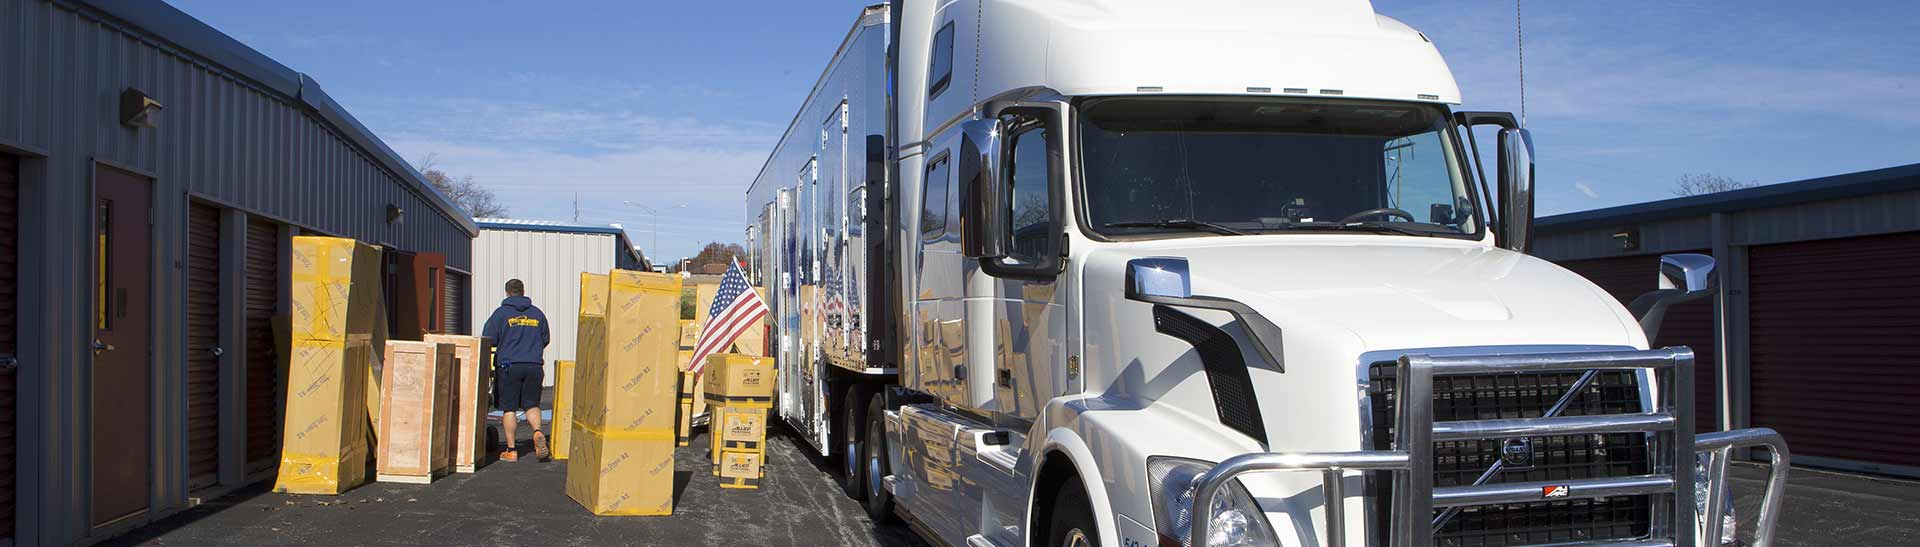 Lancaster Trucking Company, Trucking Services and Freight Forwarding Services